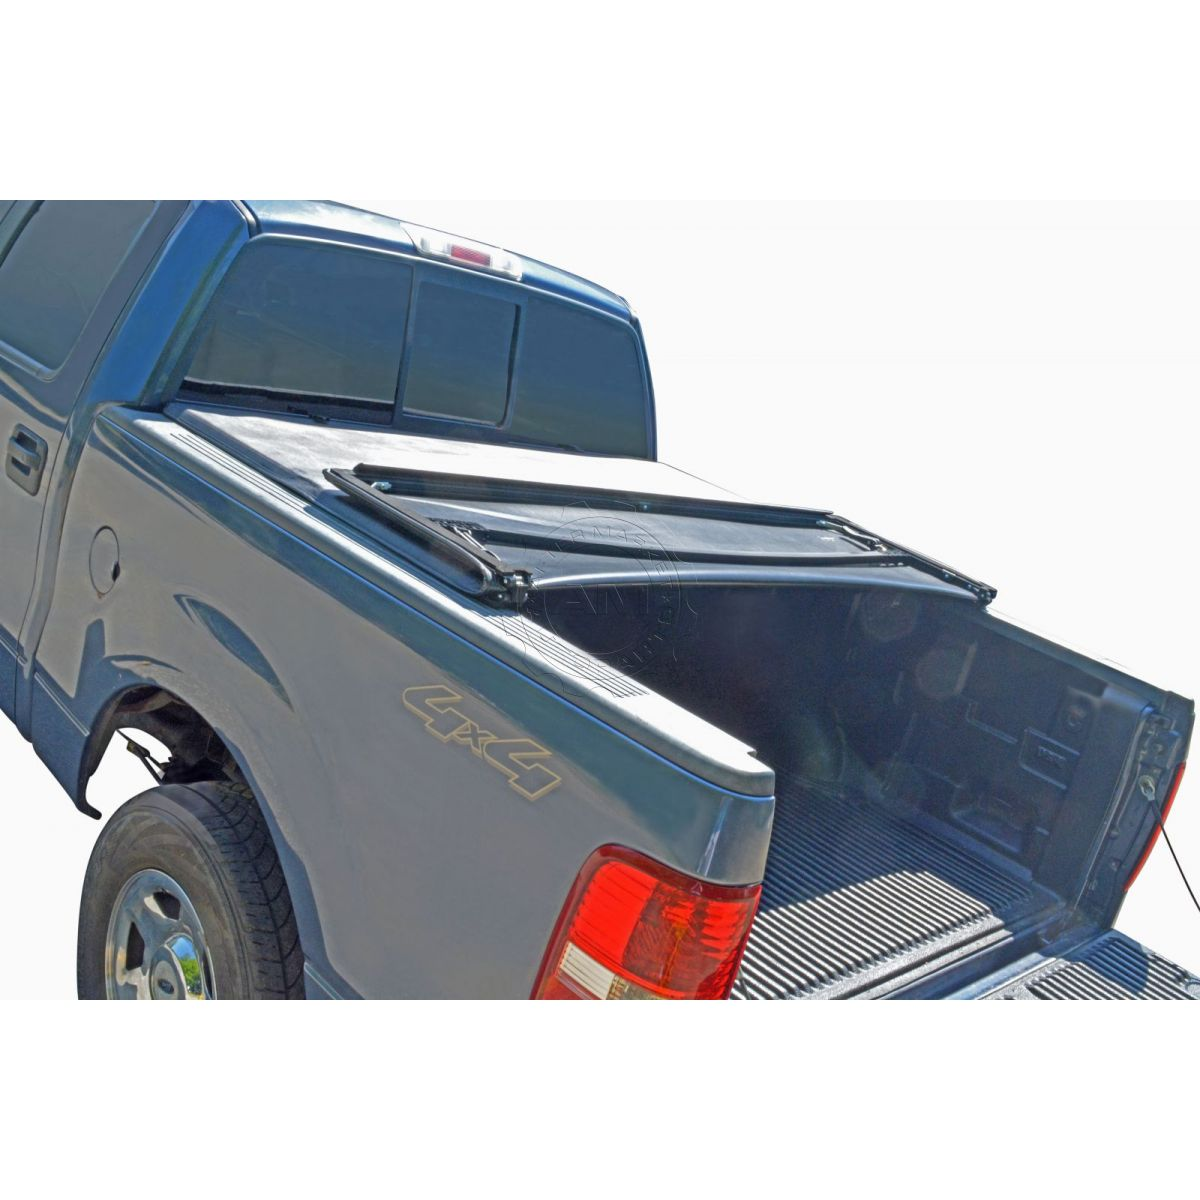 Details About Tonneau Cover Soft Tri Fold For Ford F150 Pickup Truck 65ft Flareside Bed New